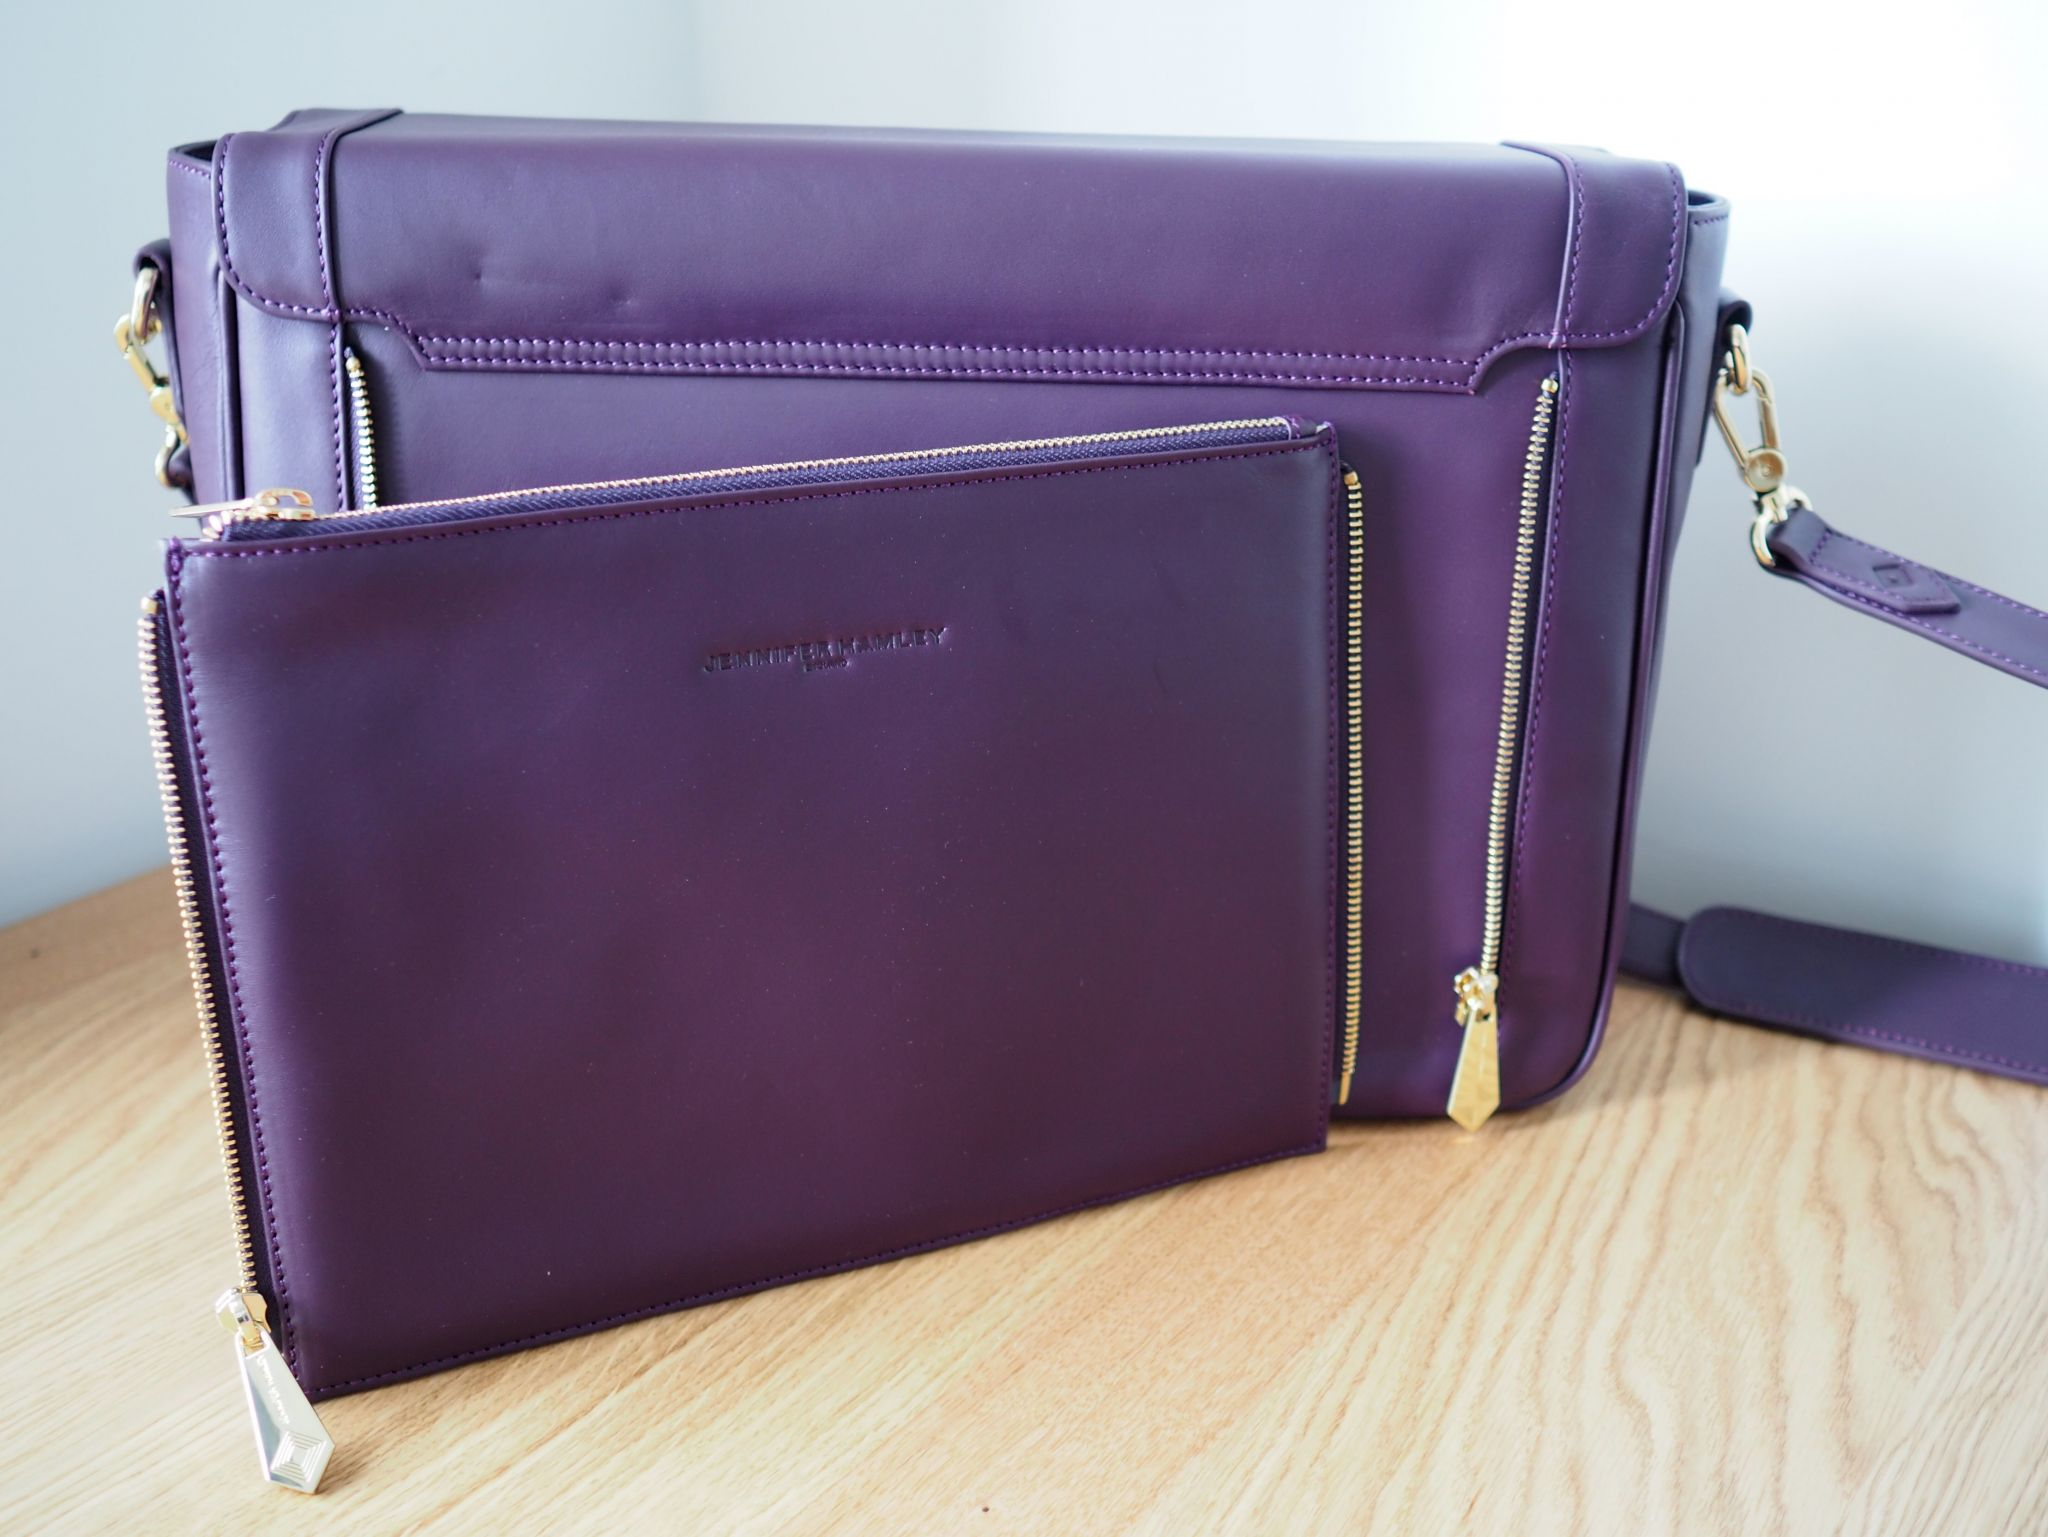 what-lizzy-loves-jennifer hamley-model-kt-laptop-bag-review-zip-off-clutch